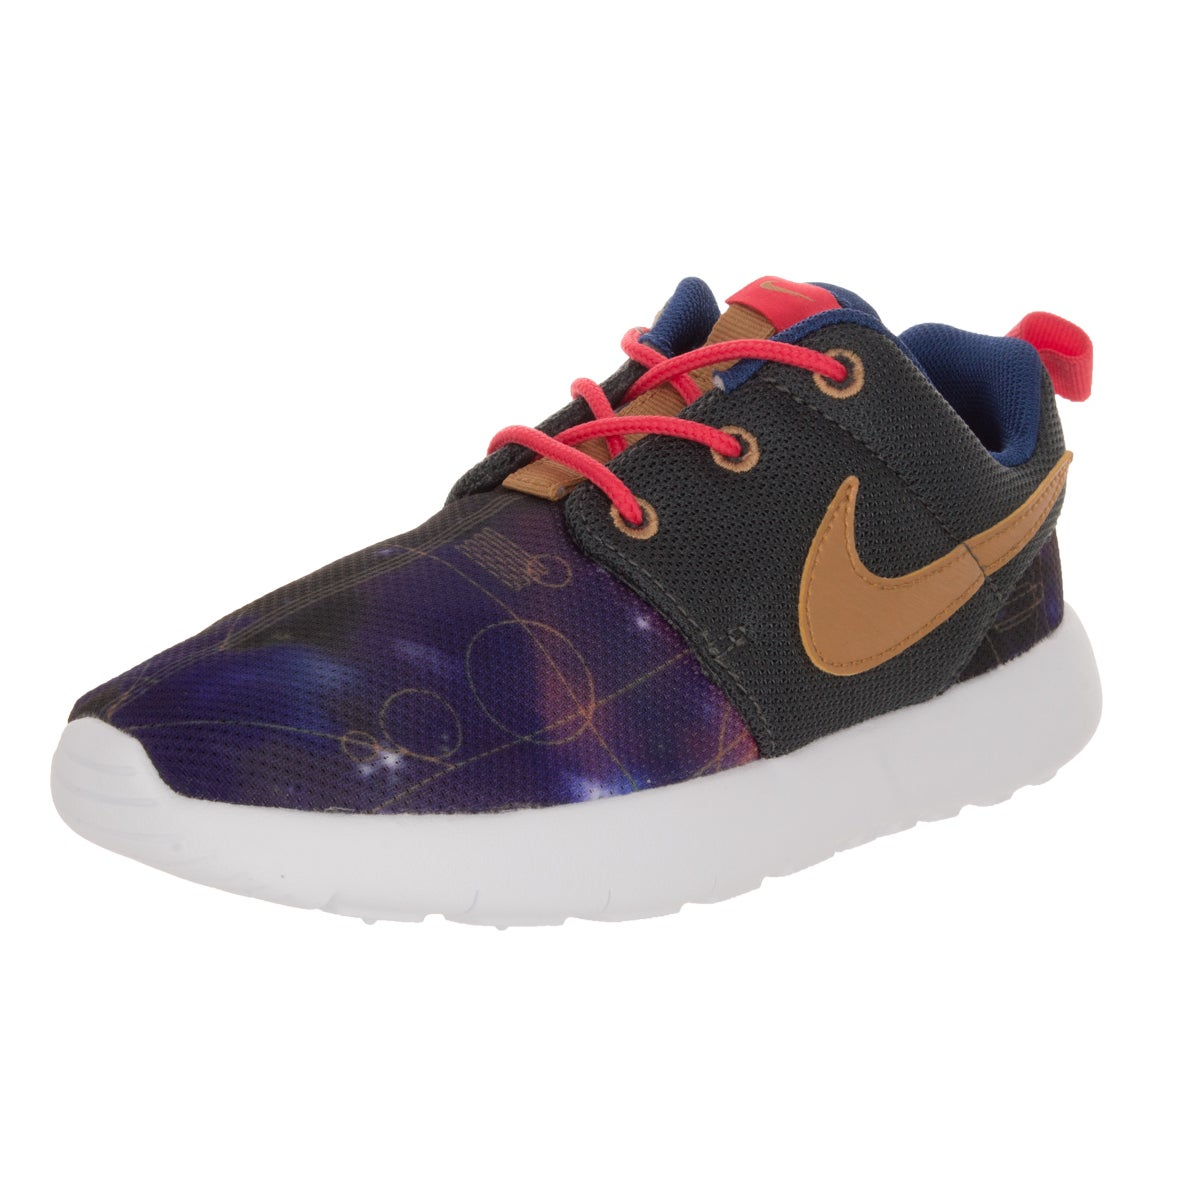 cc561fbbadc32 Shop Nike Kid s Roshe One Print (Ps) Hmtt Mlc Gld Lt Running Shoe - Free  Shipping On Orders Over  45 - Overstock - 12323010